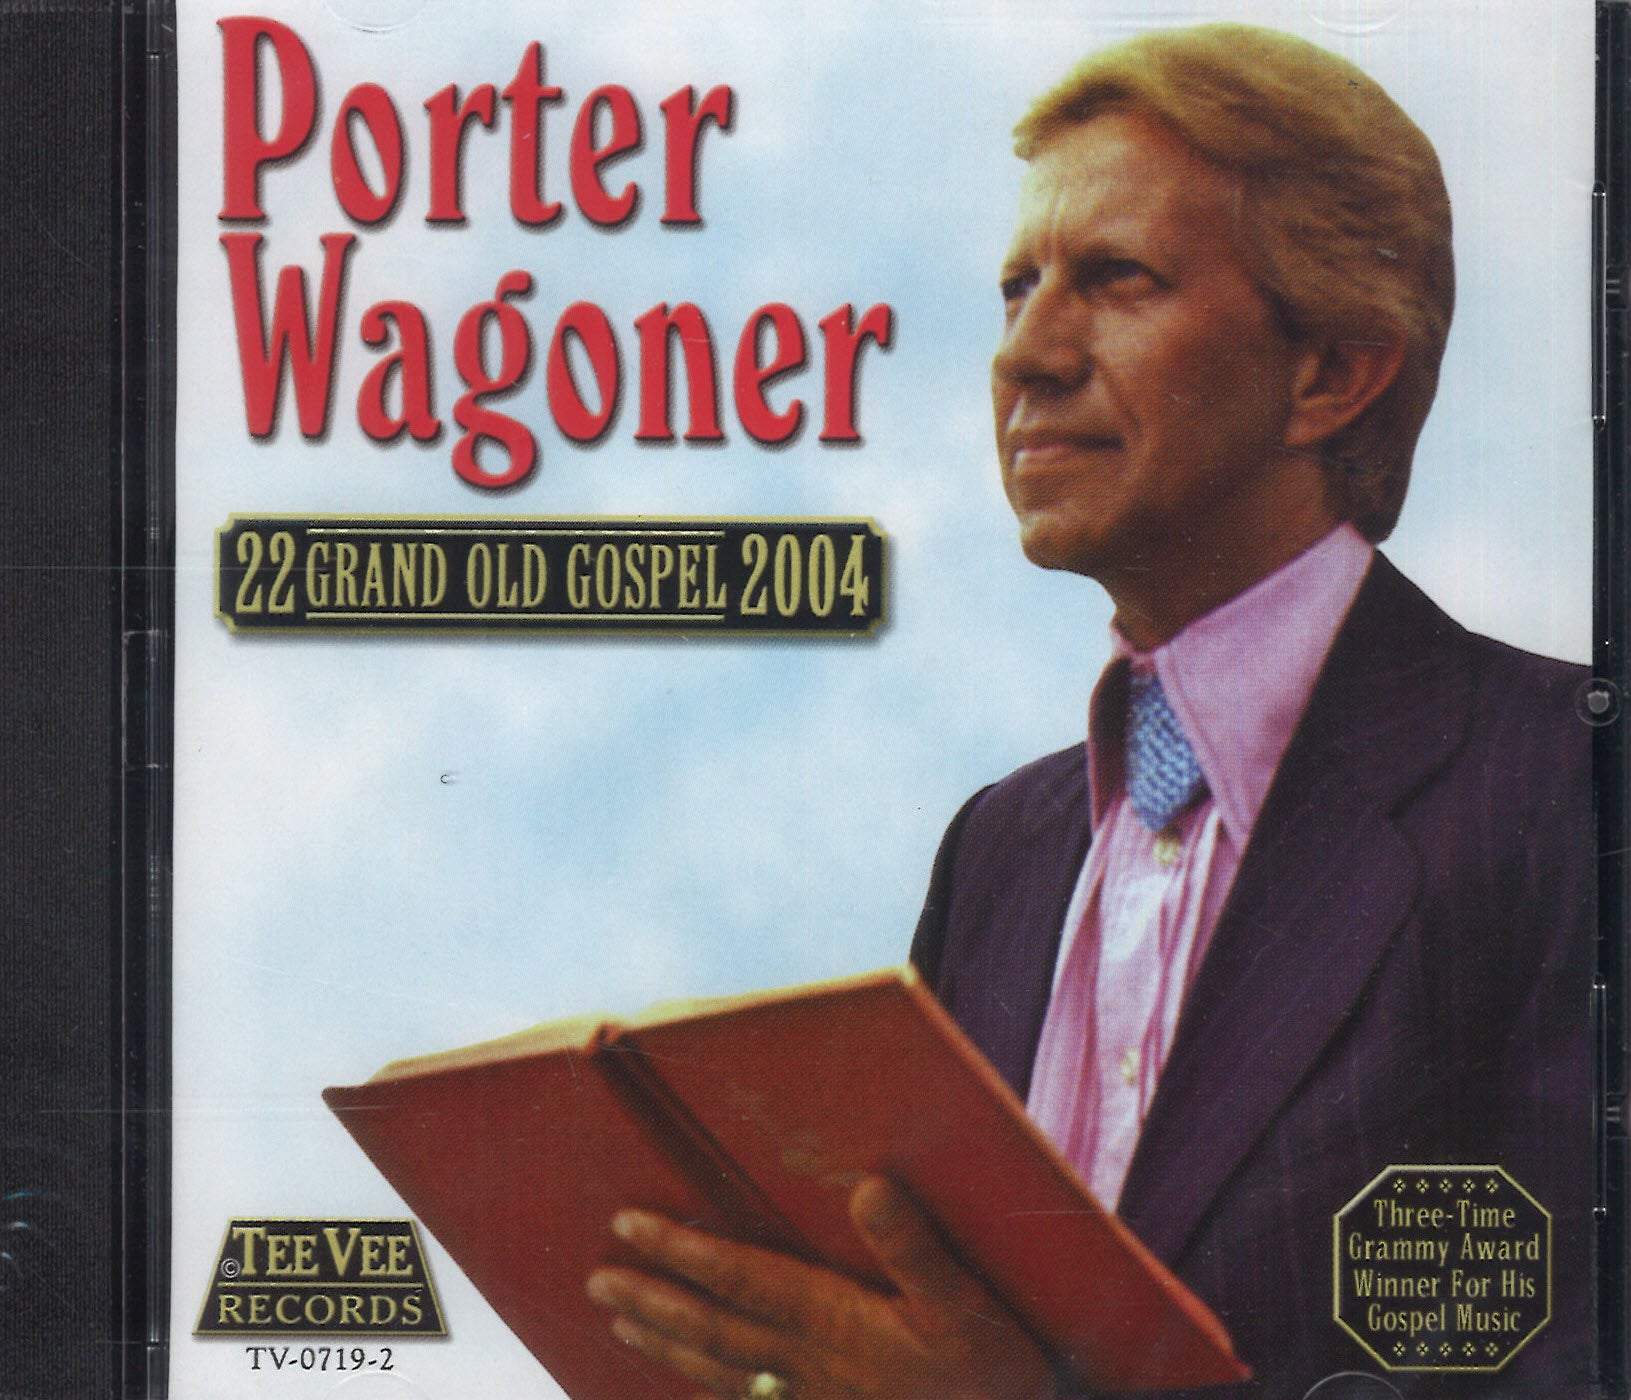 Porter Wagoner 22 Grand Old Gospel 2004